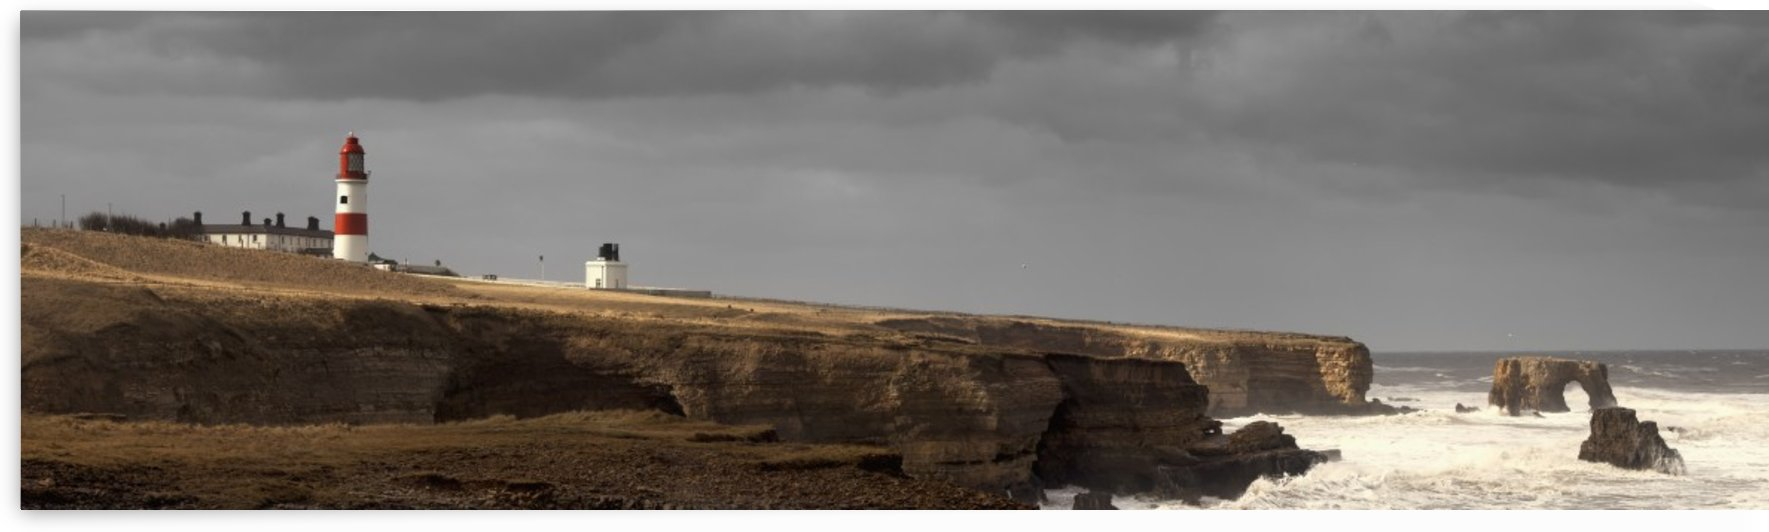 A lighthouse and cliffs along the coastline;South Shields Tyne and Wear England by PacificStock